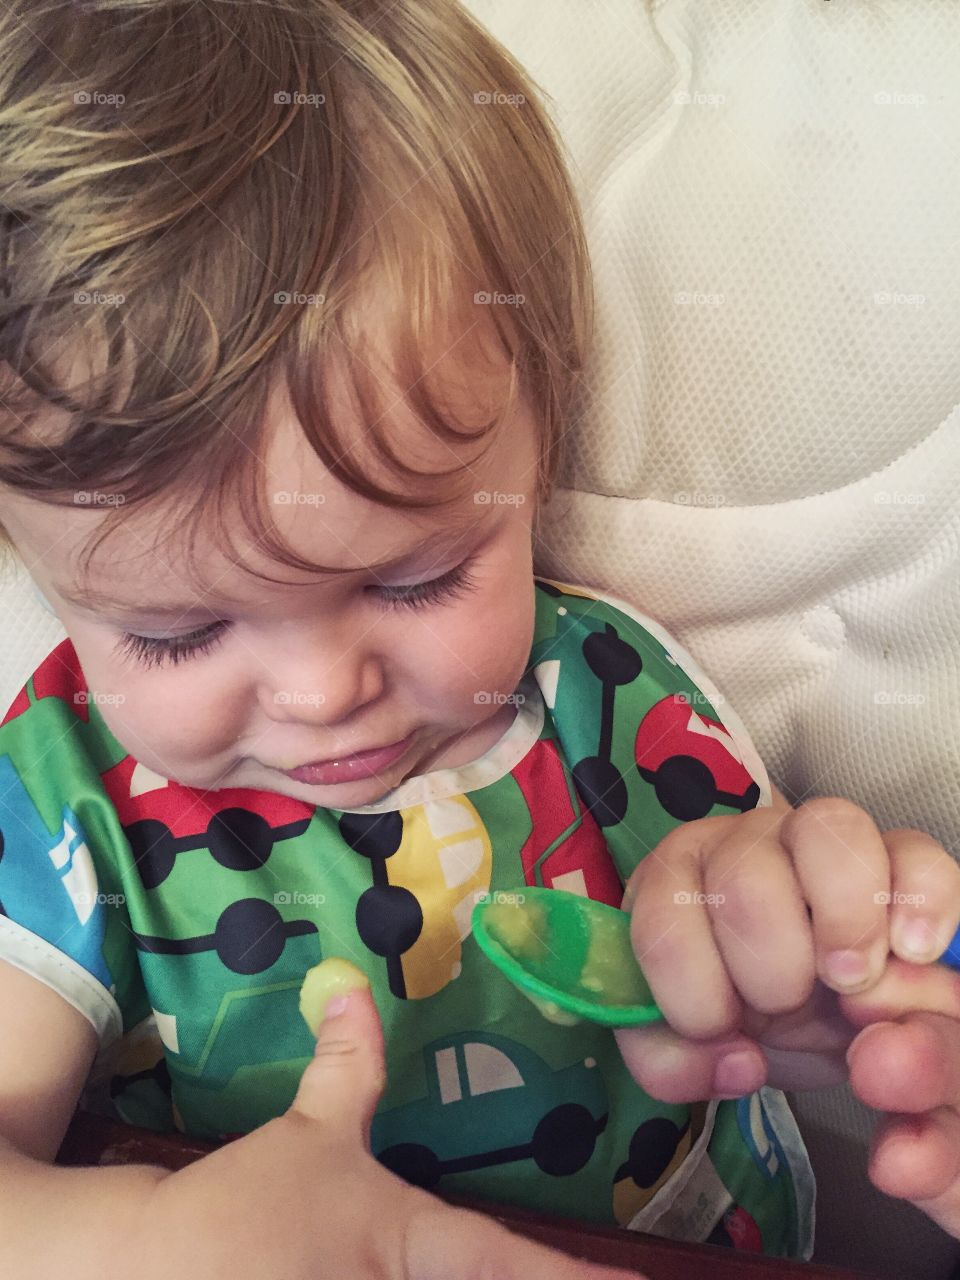 Cute toddler holding spoon with cream on thumb